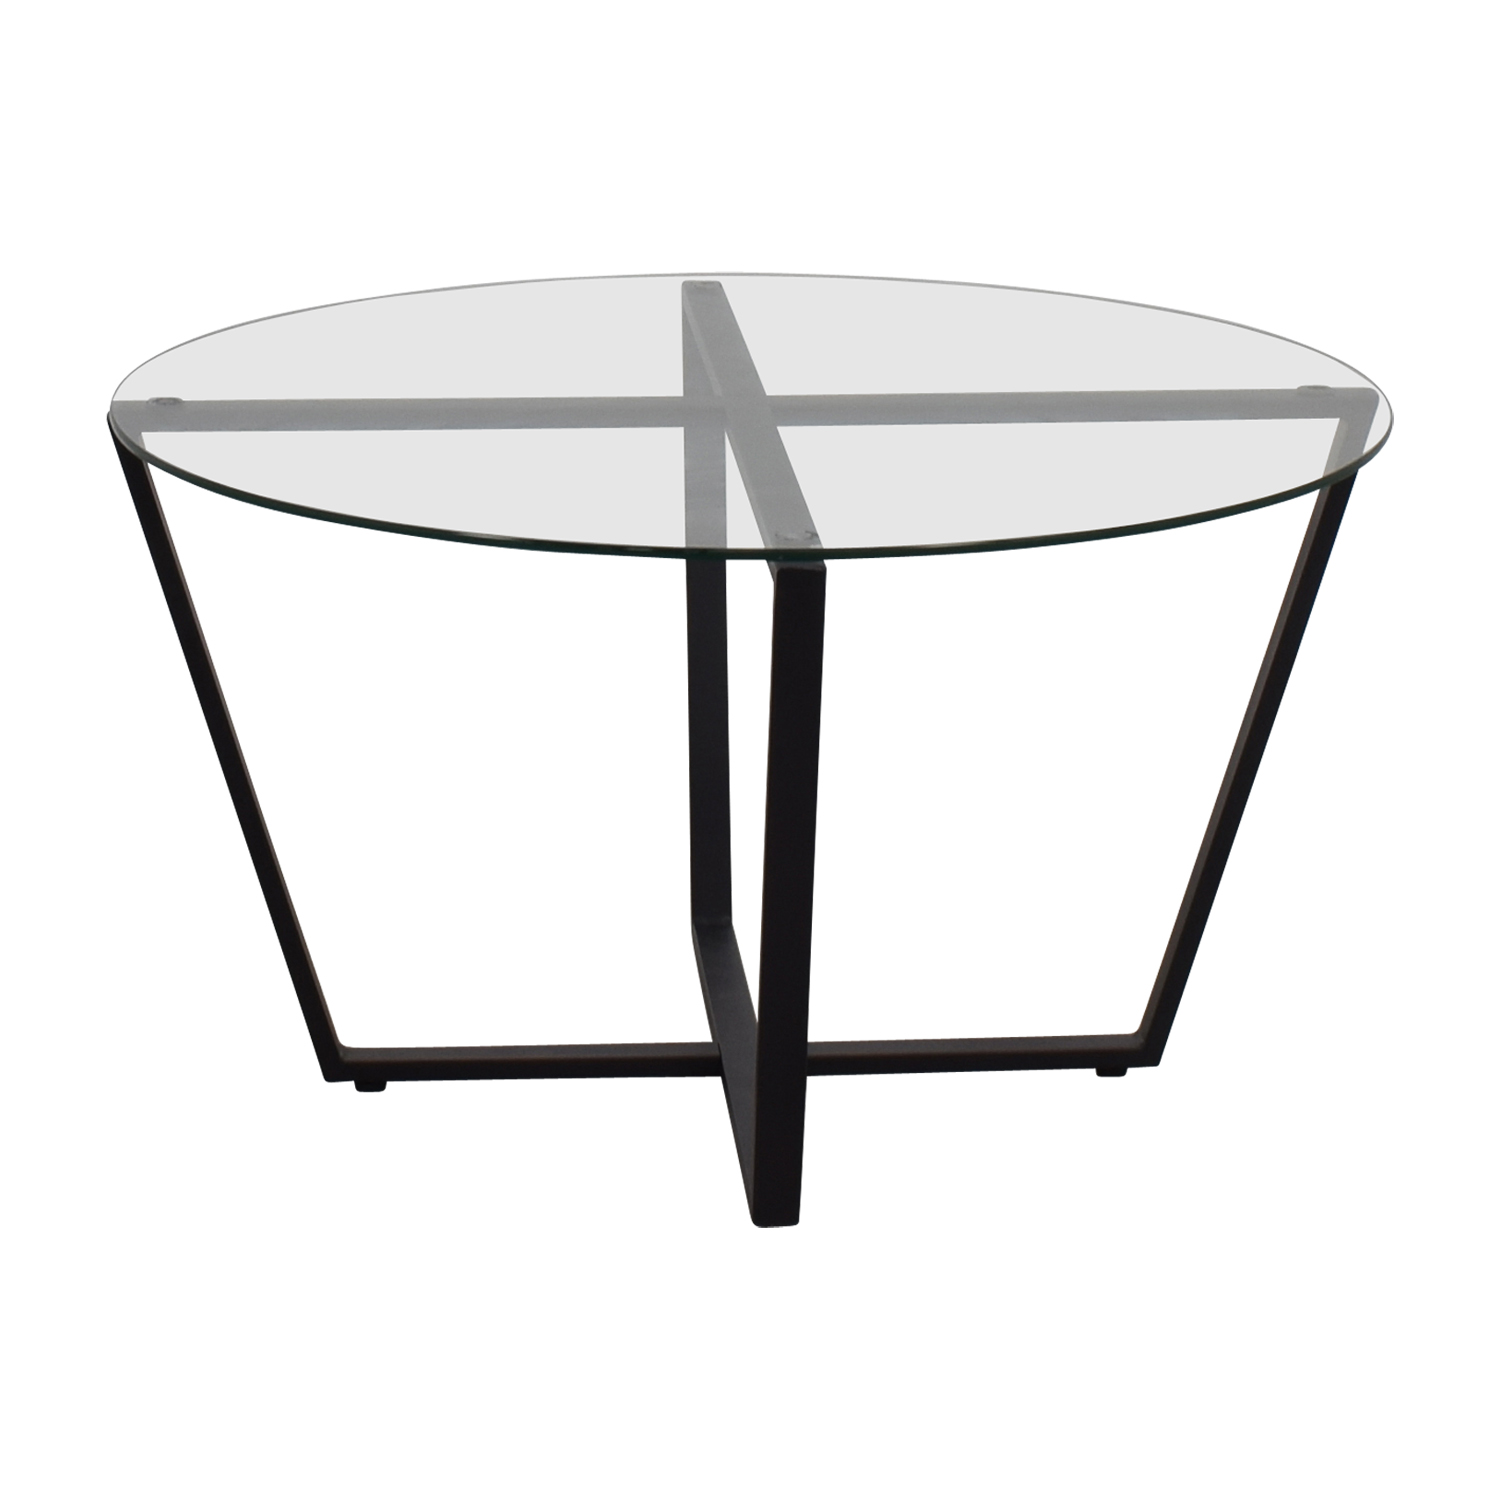 buy Mango Steam Mango Steam Metro Round Glass Coffee Table online